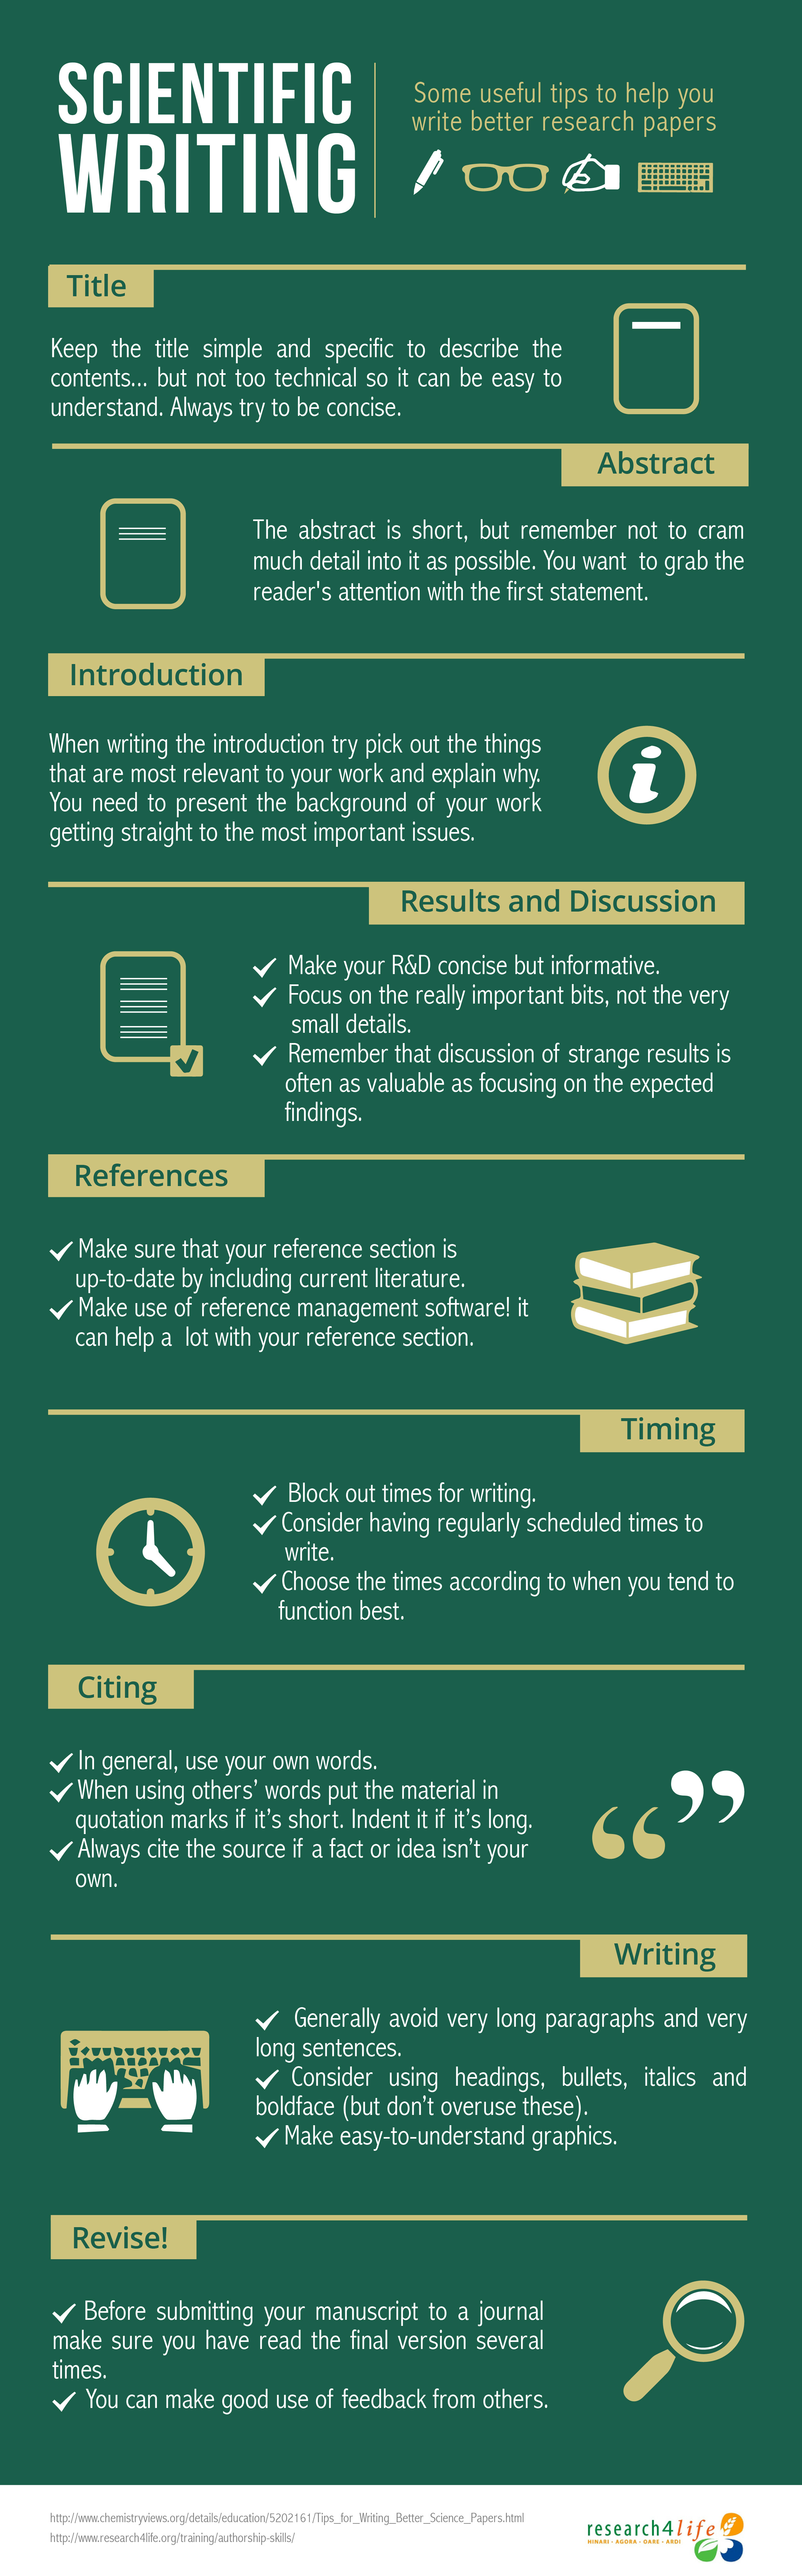 High School Experience Essay Writing A Research Paper Writing High School Essays also Science Essay Questions Tips For Writing A Research Paper  Researchlife College Vs High School Essay Compare And Contrast